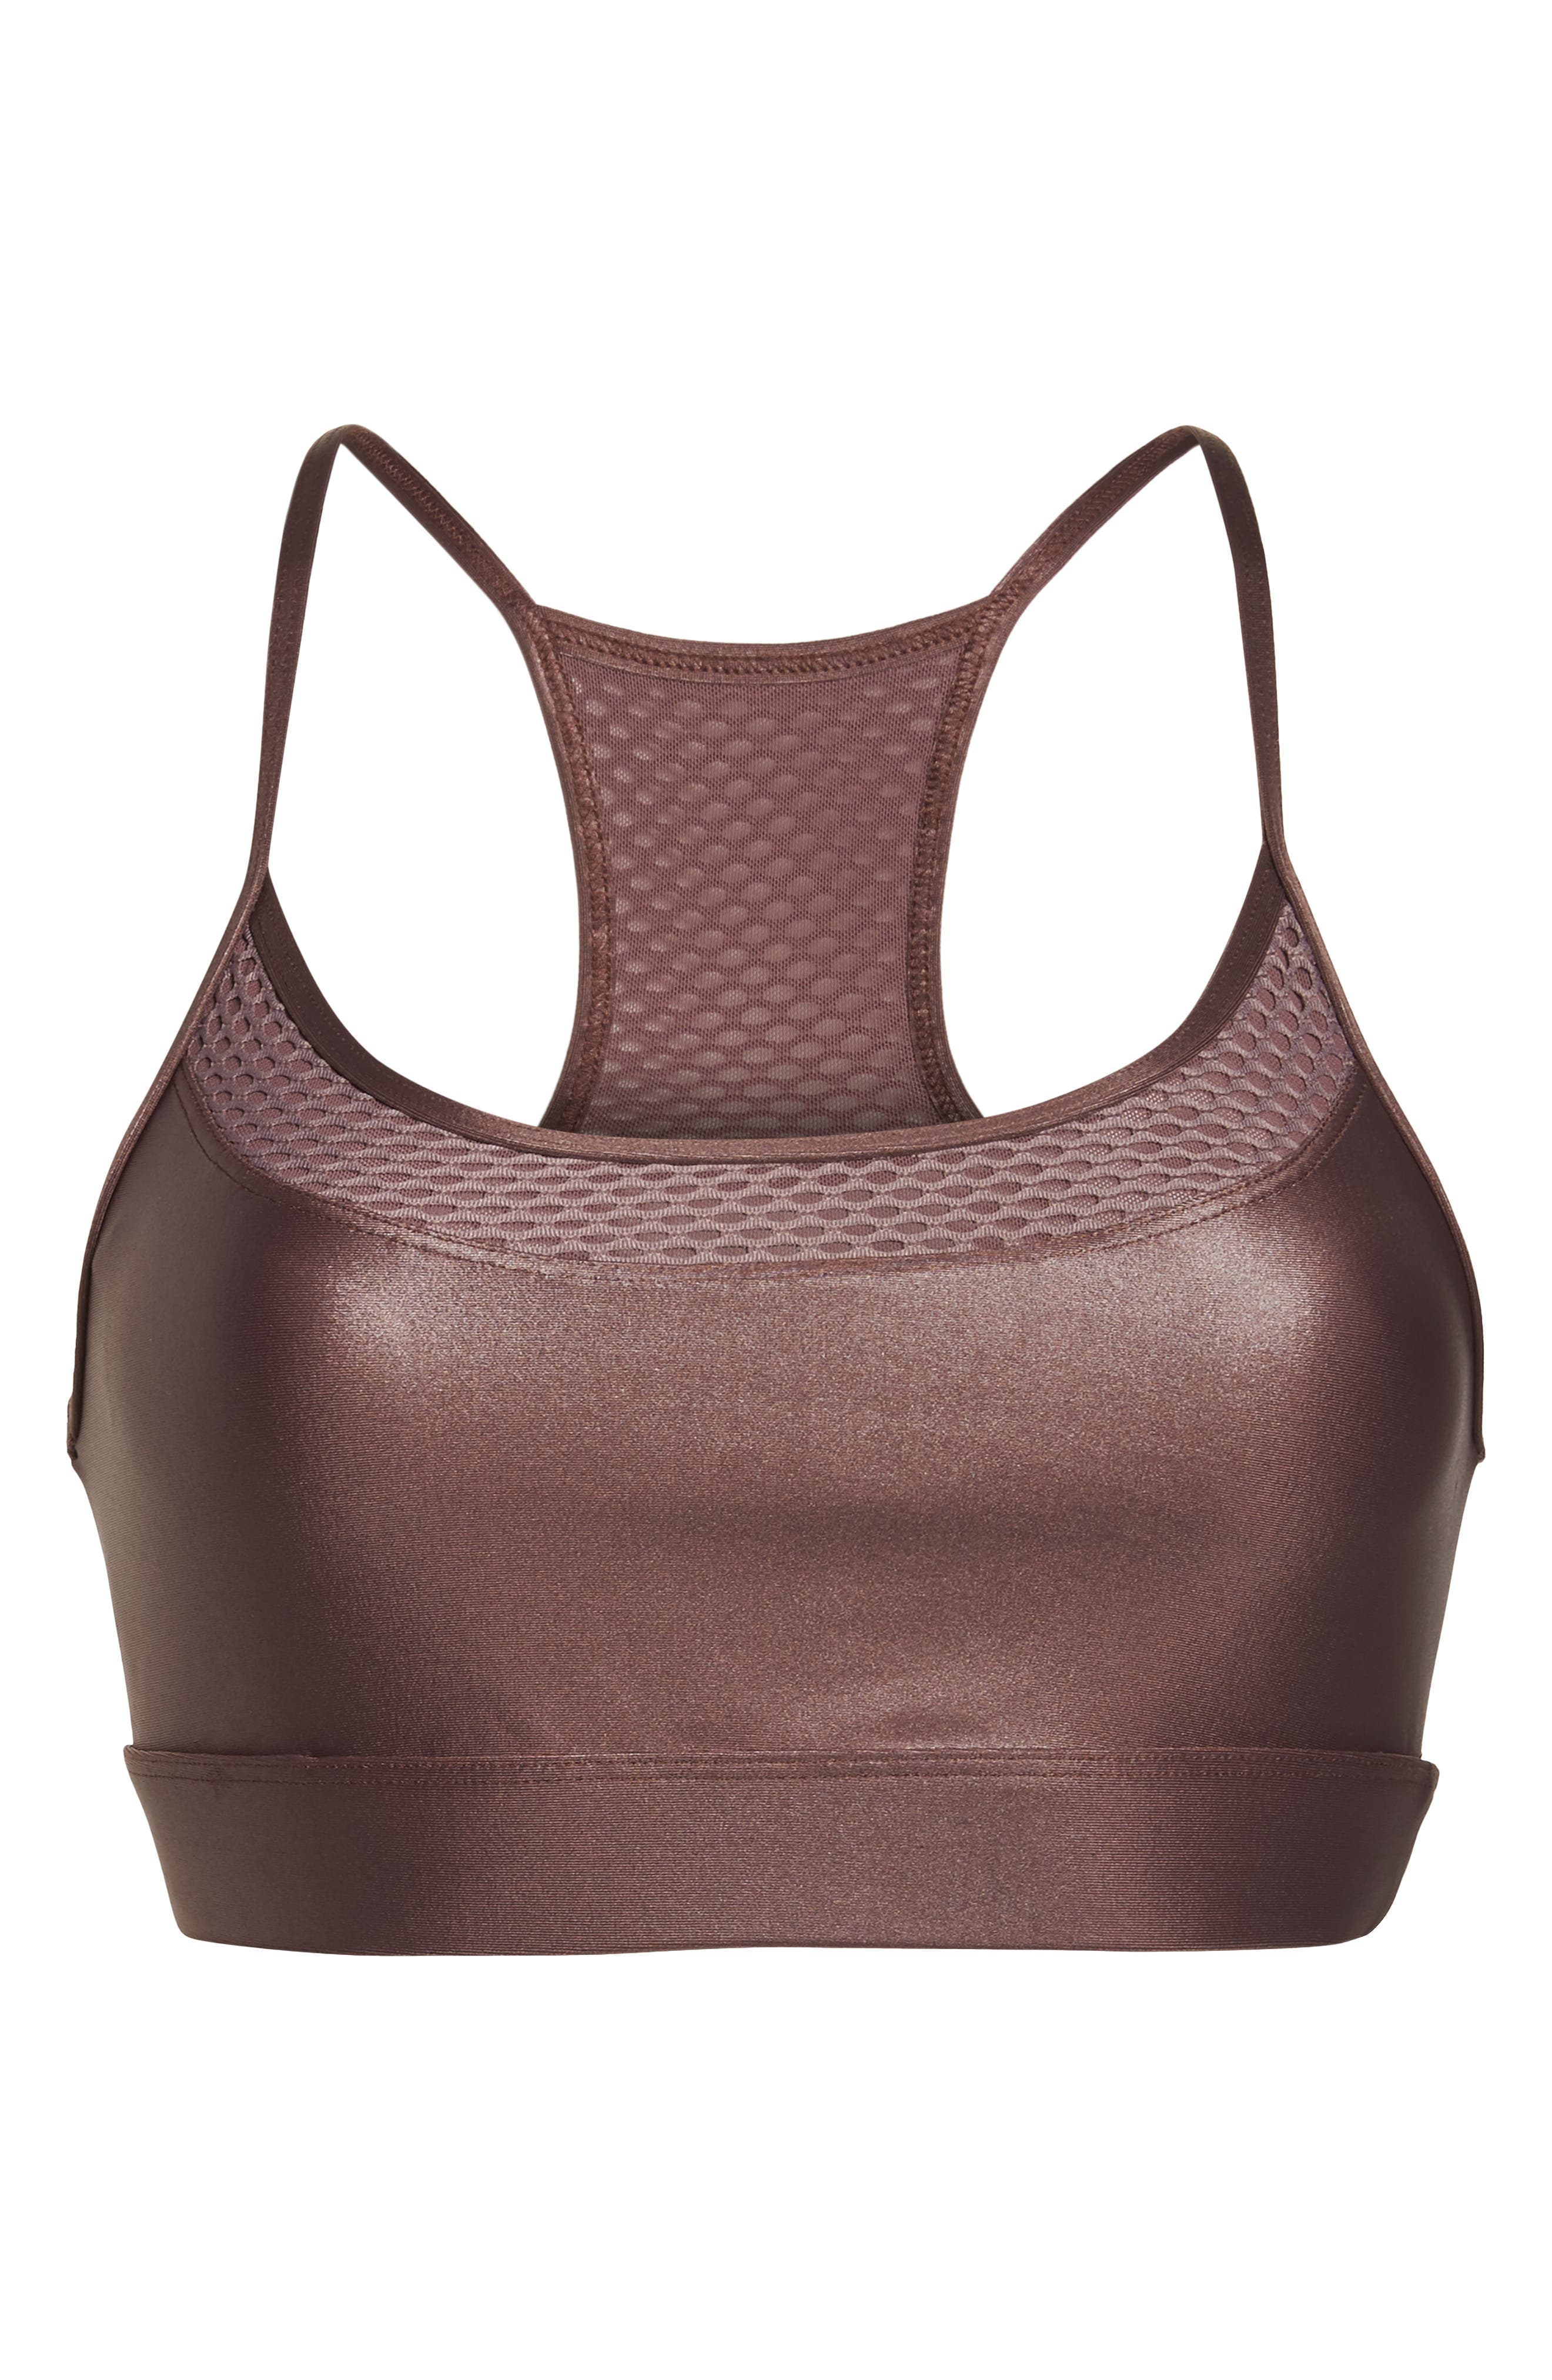 Pacifica Bra,                             Alternate thumbnail 7, color,                             530